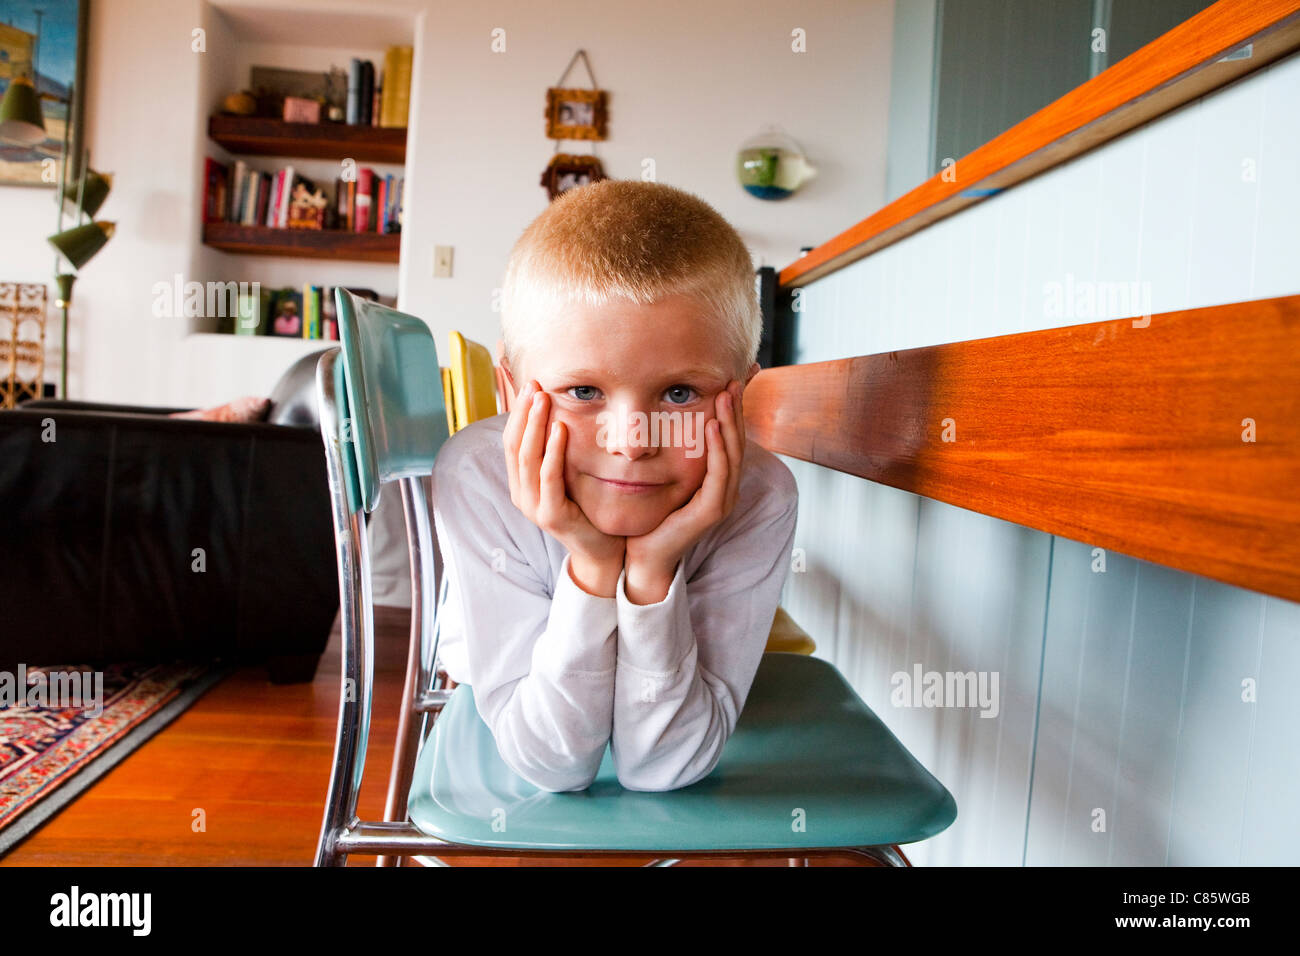 Boy laying across chairs Stock Photo